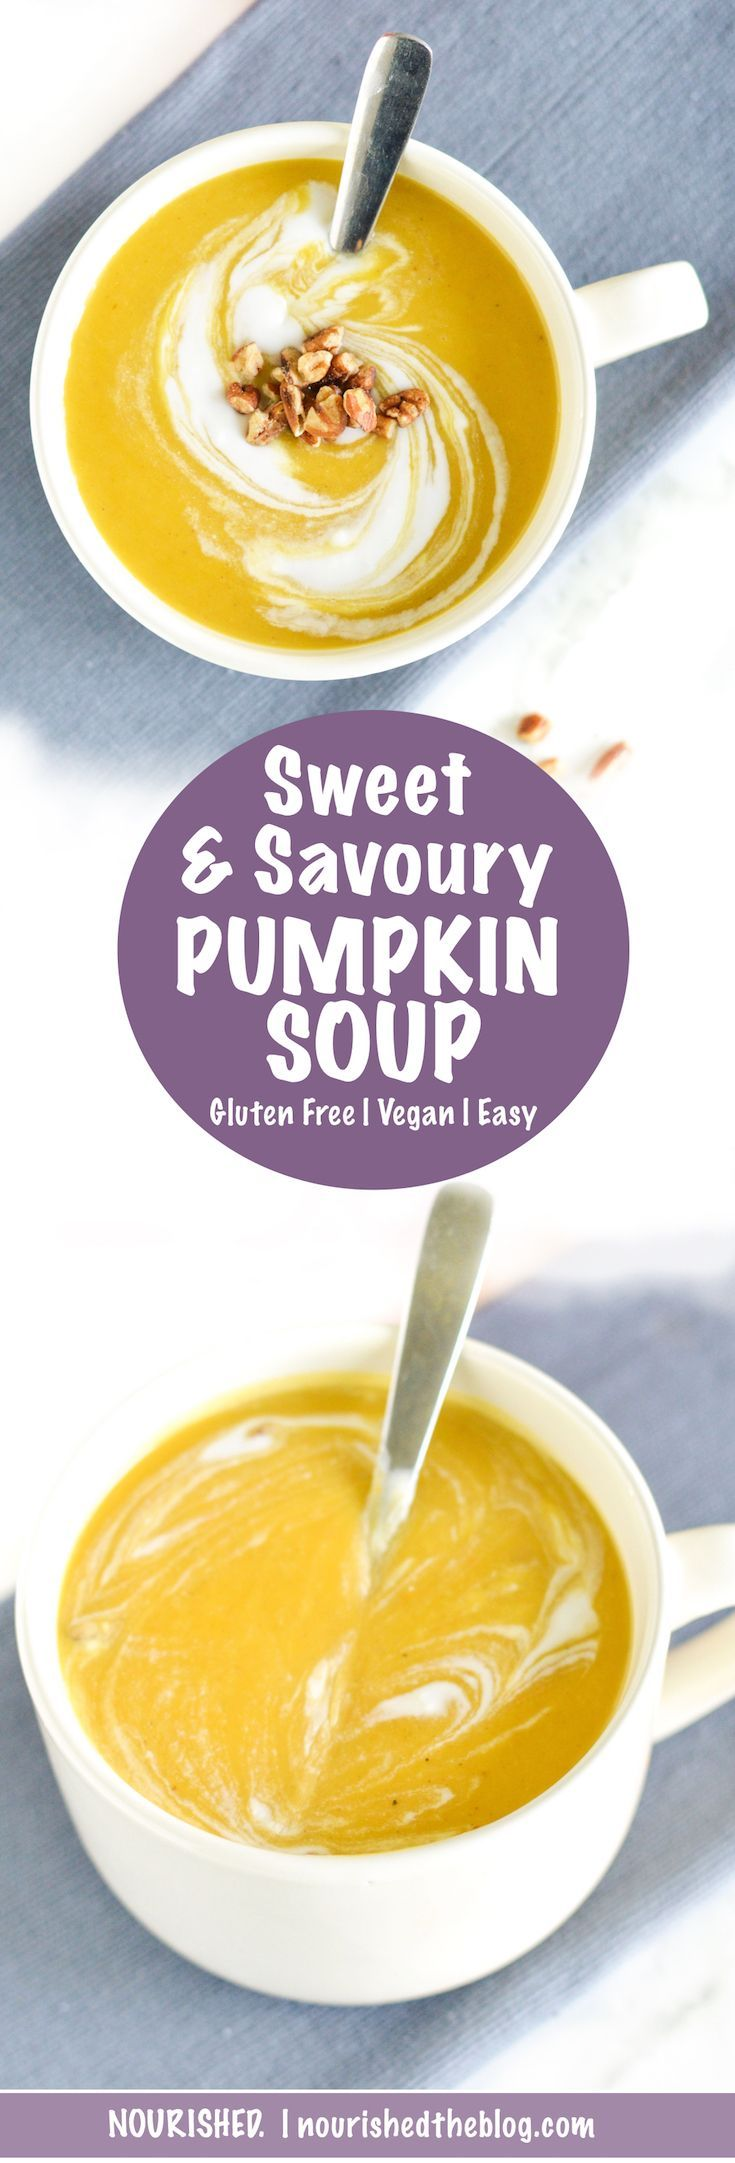 This Sweet and Savoury Pumpkin Soup is a little sweet and a little savoury made with lots of pumpkin and a lot of deliciousness like pumpkin spice, garlic and onions then topped with a pretty coconut milk swirl. This Pumpkin Soup just tastes like fall should!